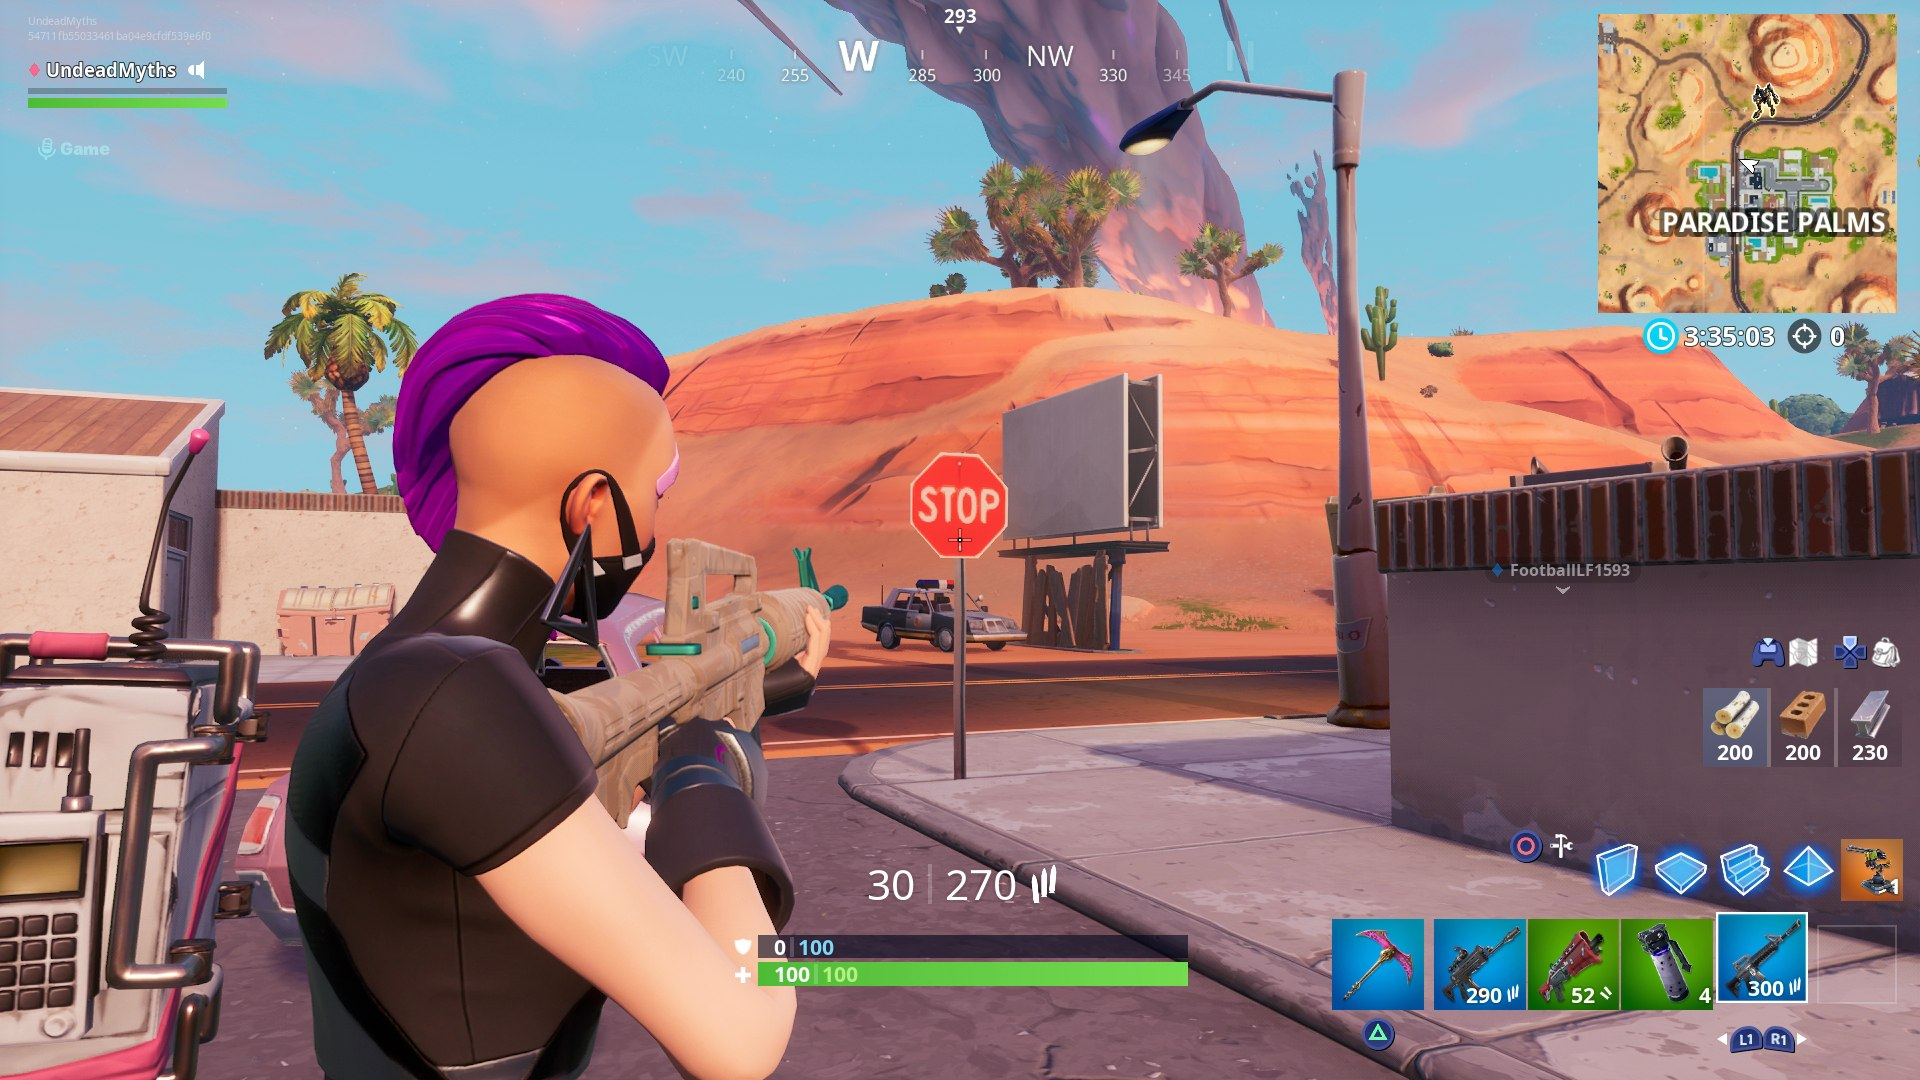 Fortnite Stop Sign Locations - Where to Destroy Stop Signs